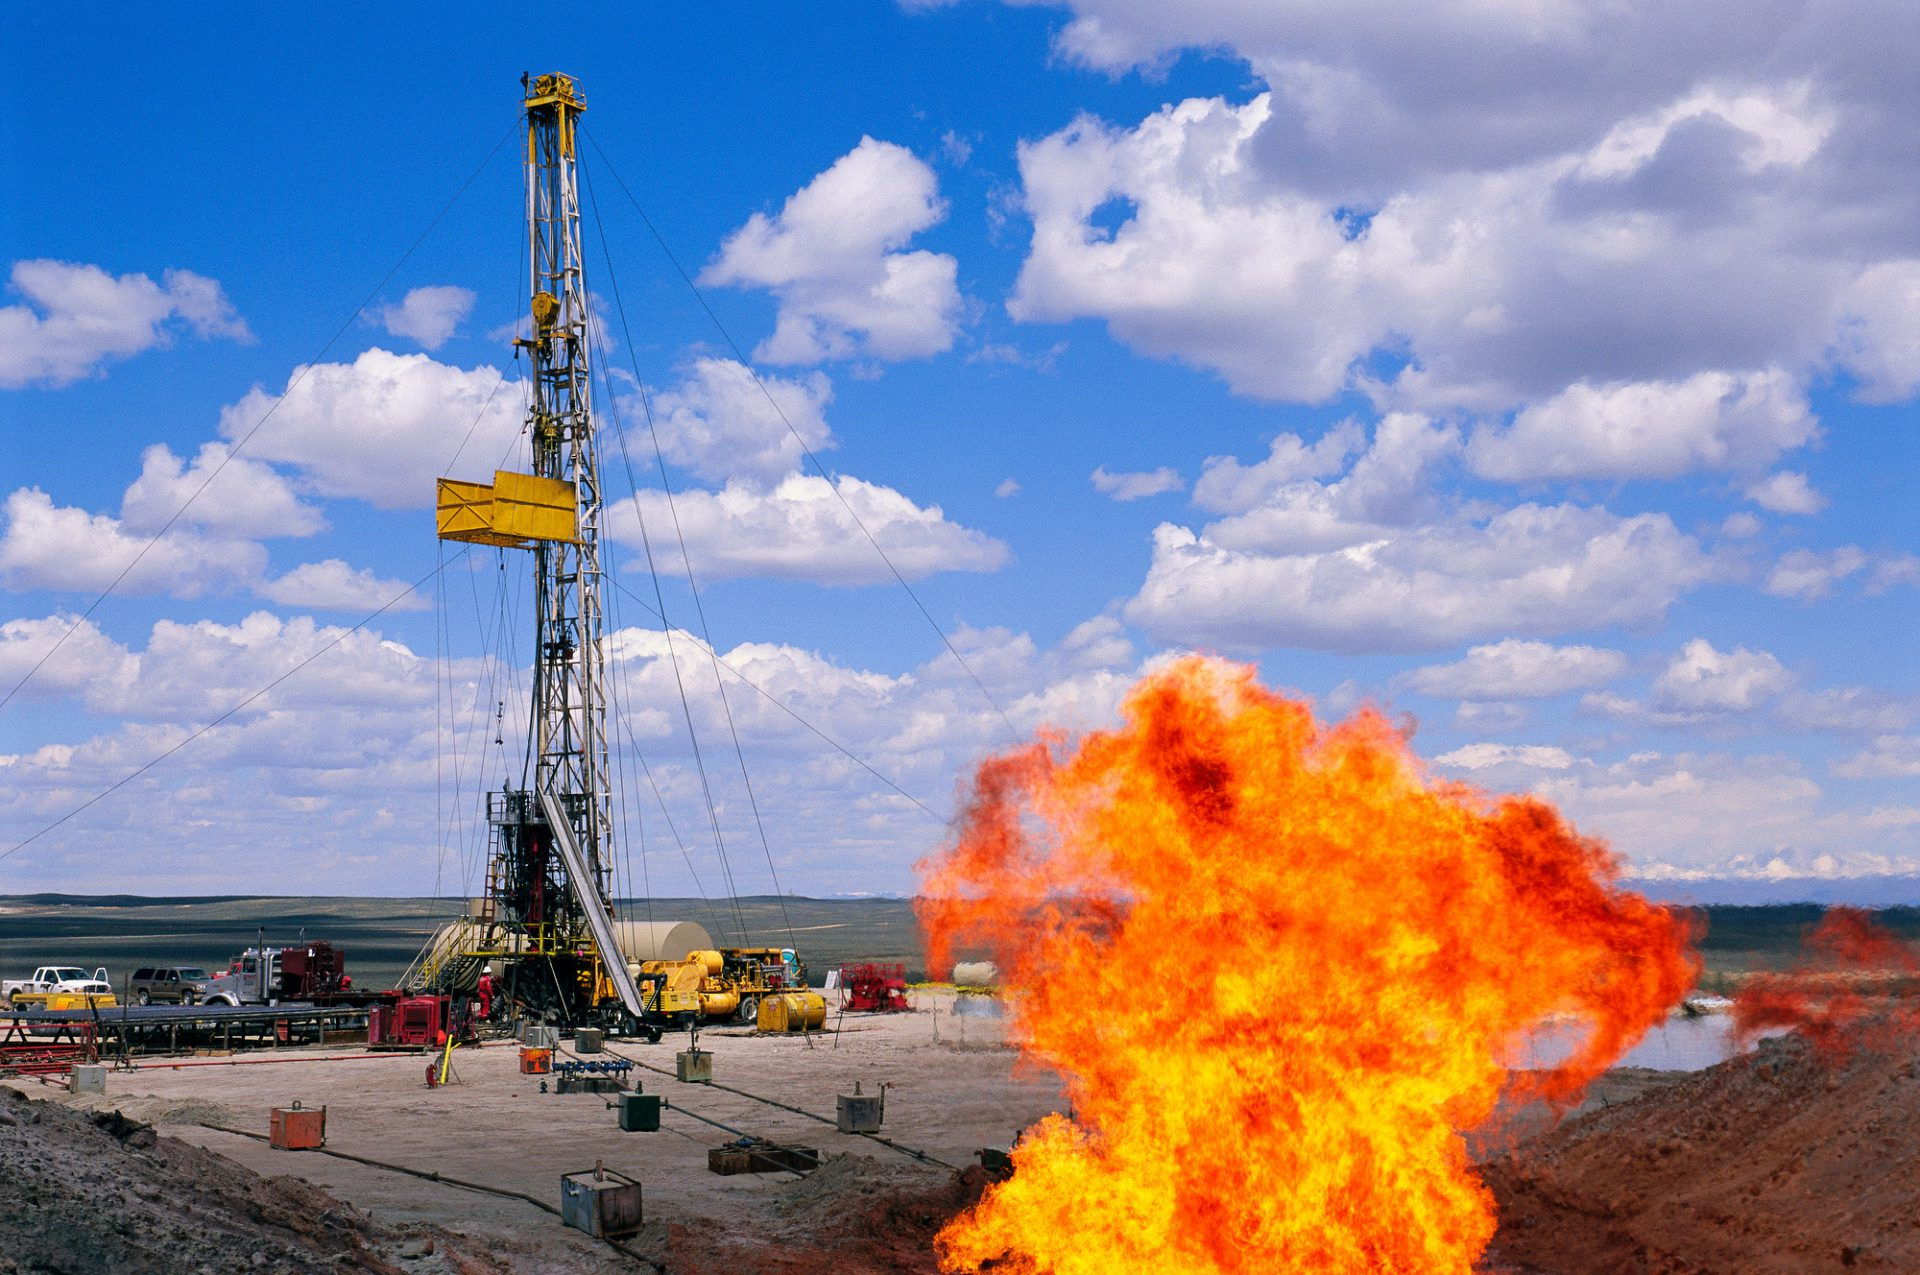 Photo: A flare erupts at a natural gas well near Pinedale, Wyoming.